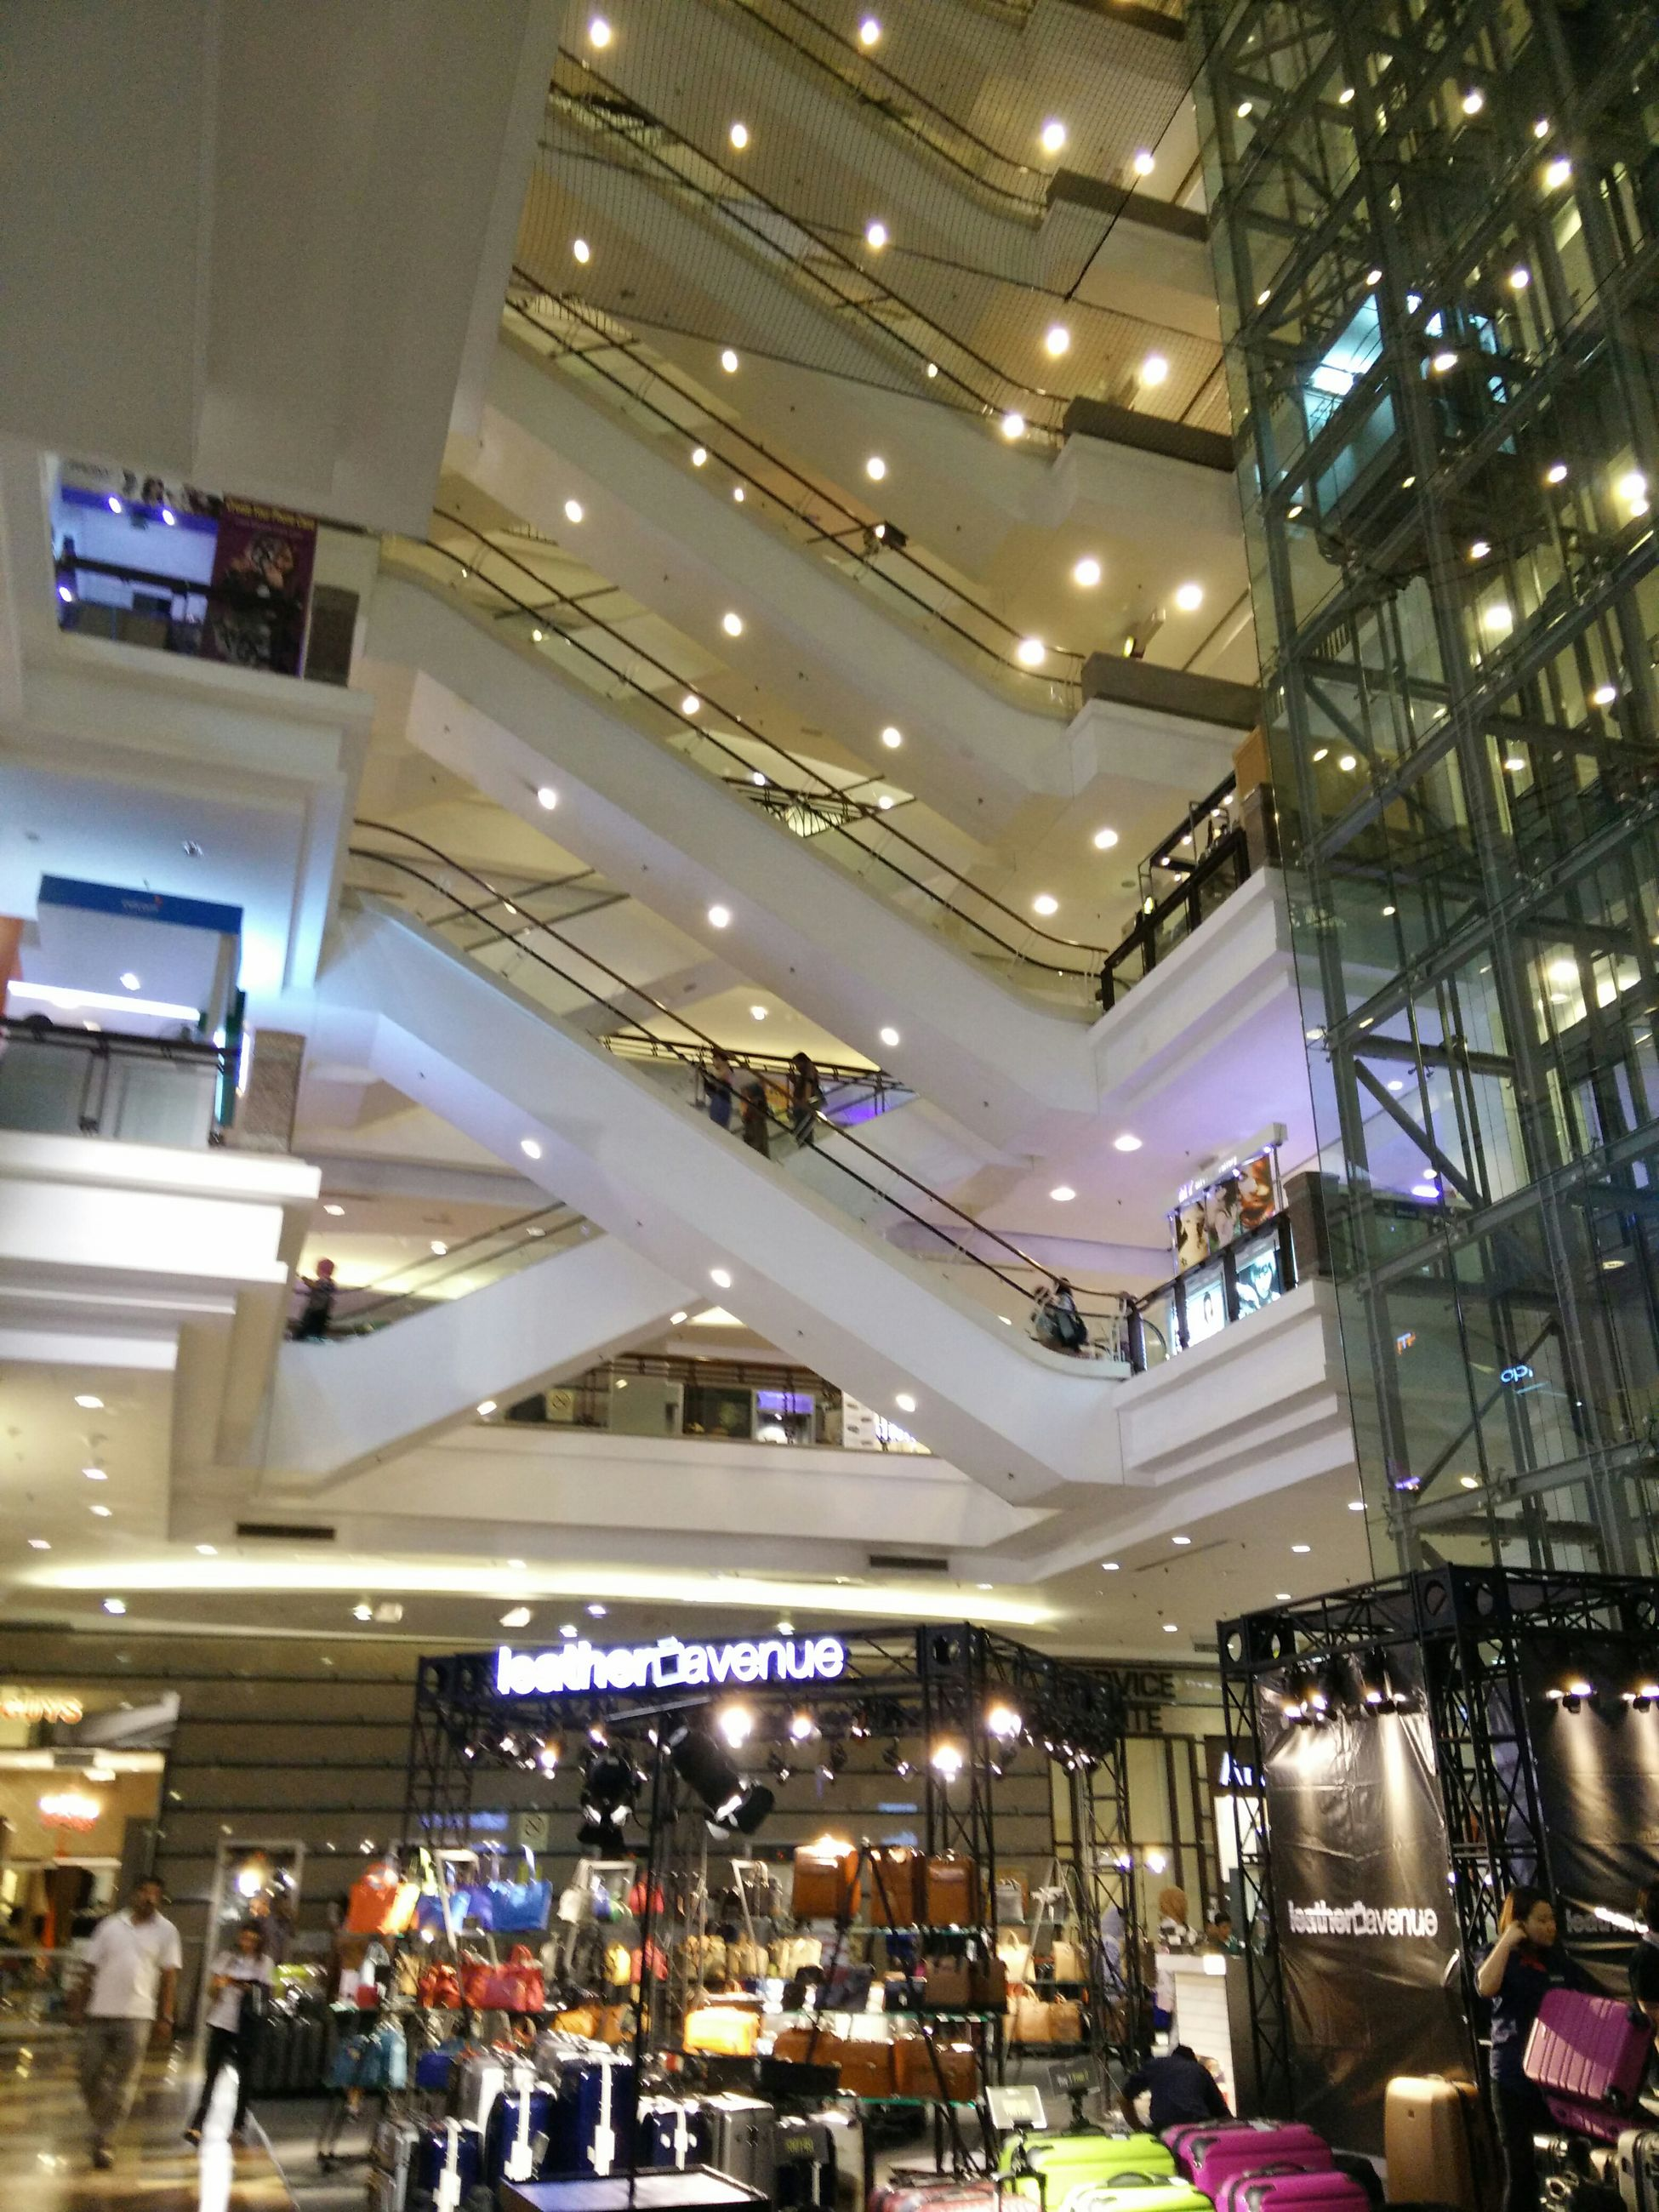 illuminated, indoors, lighting equipment, night, architecture, built structure, ceiling, incidental people, in a row, low angle view, modern, shopping mall, store, hanging, city, large group of objects, abundance, building exterior, city life, retail